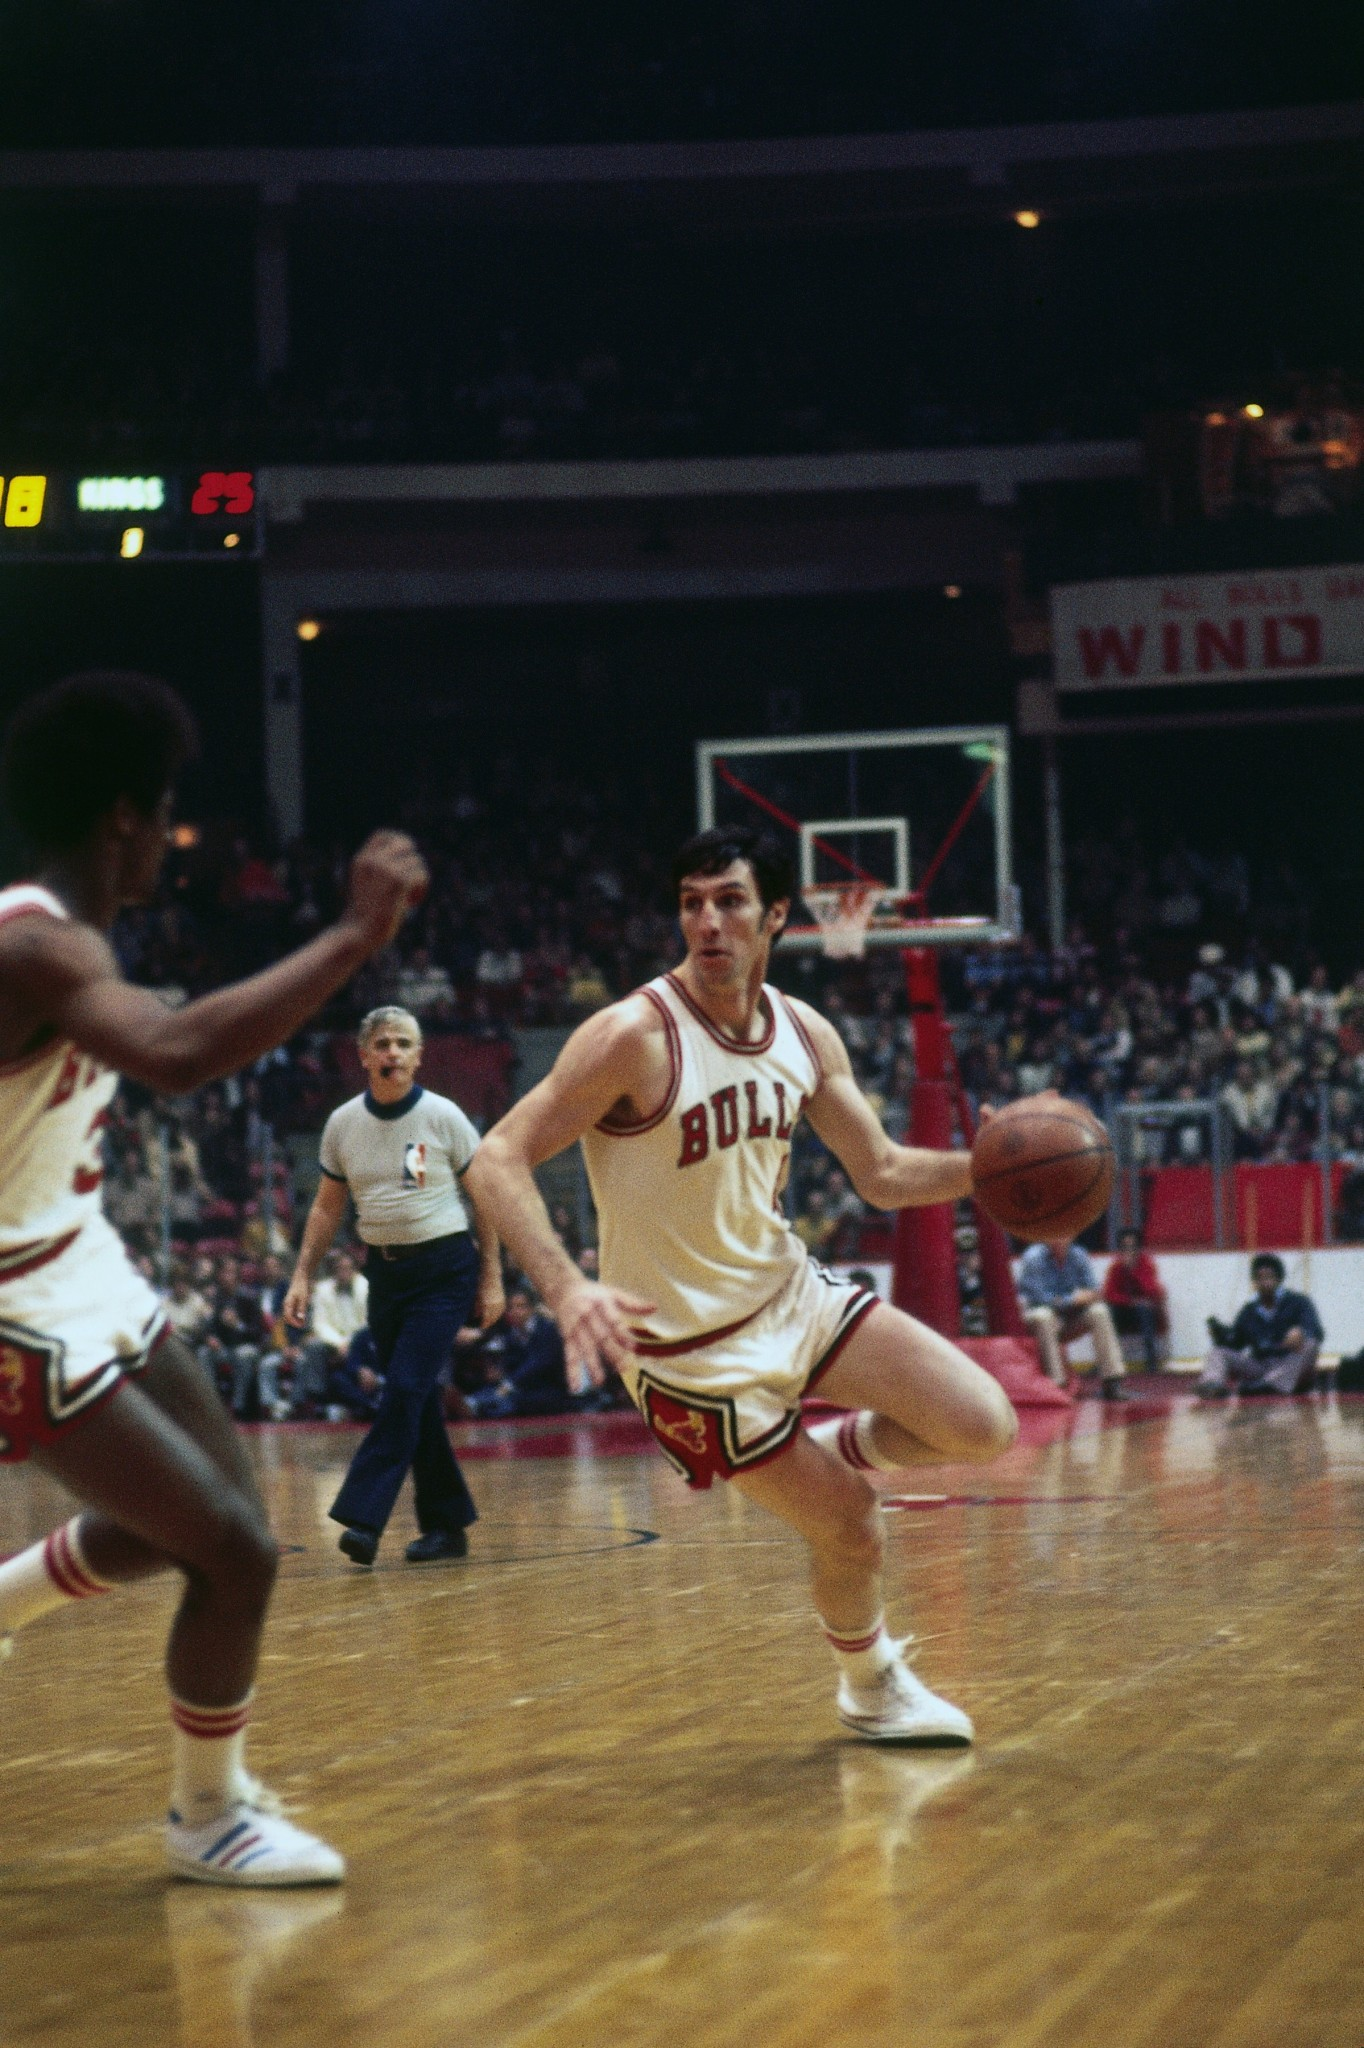 Jerry Sloan with the basketball